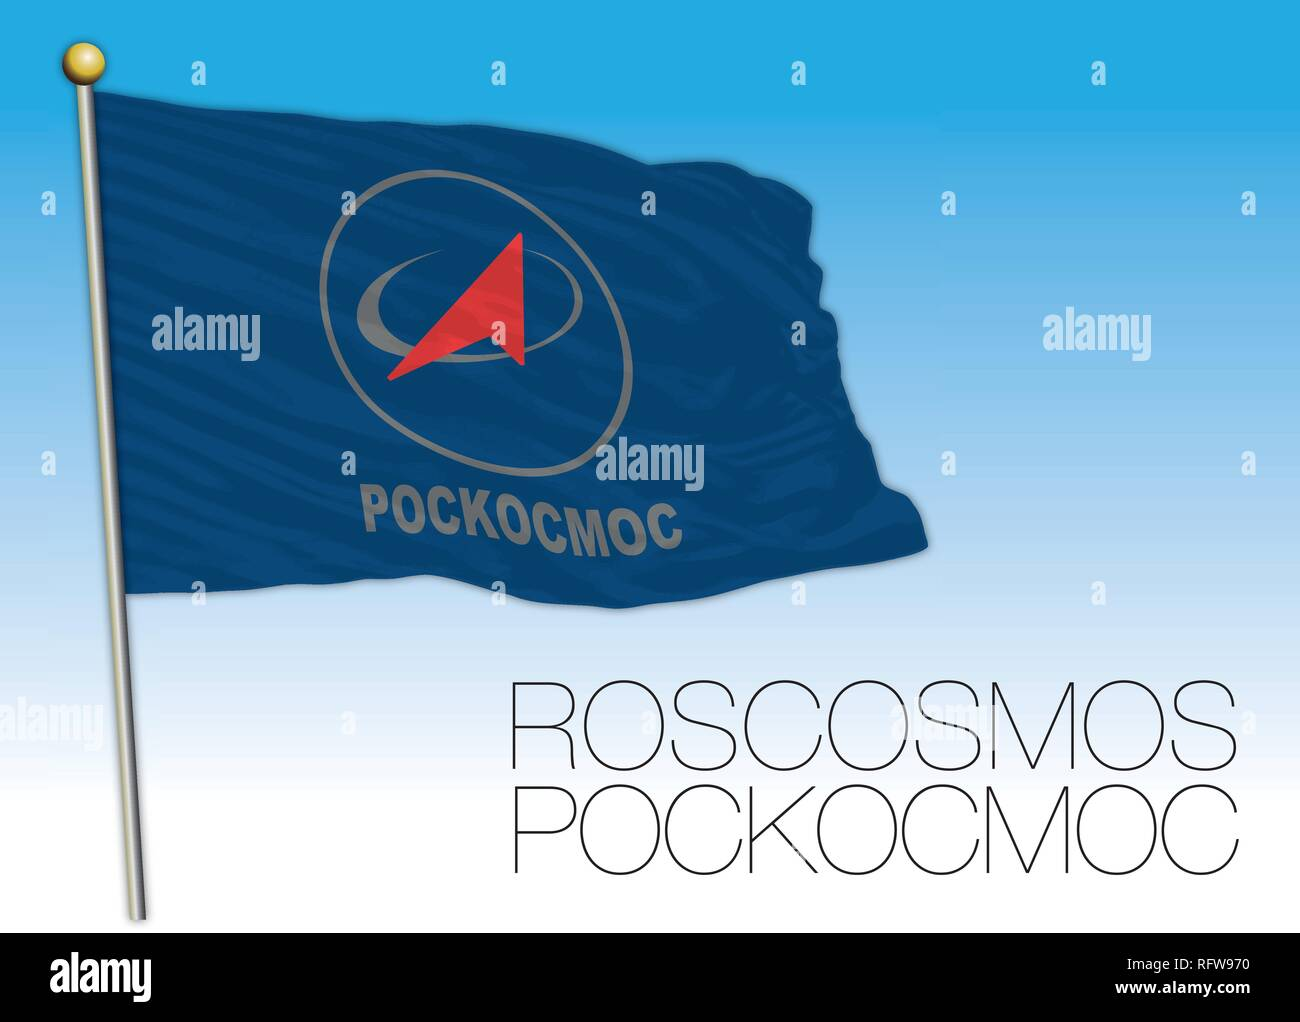 Roscosmos flag, Russian Space Agency of Russia, vector illustration - Stock Image